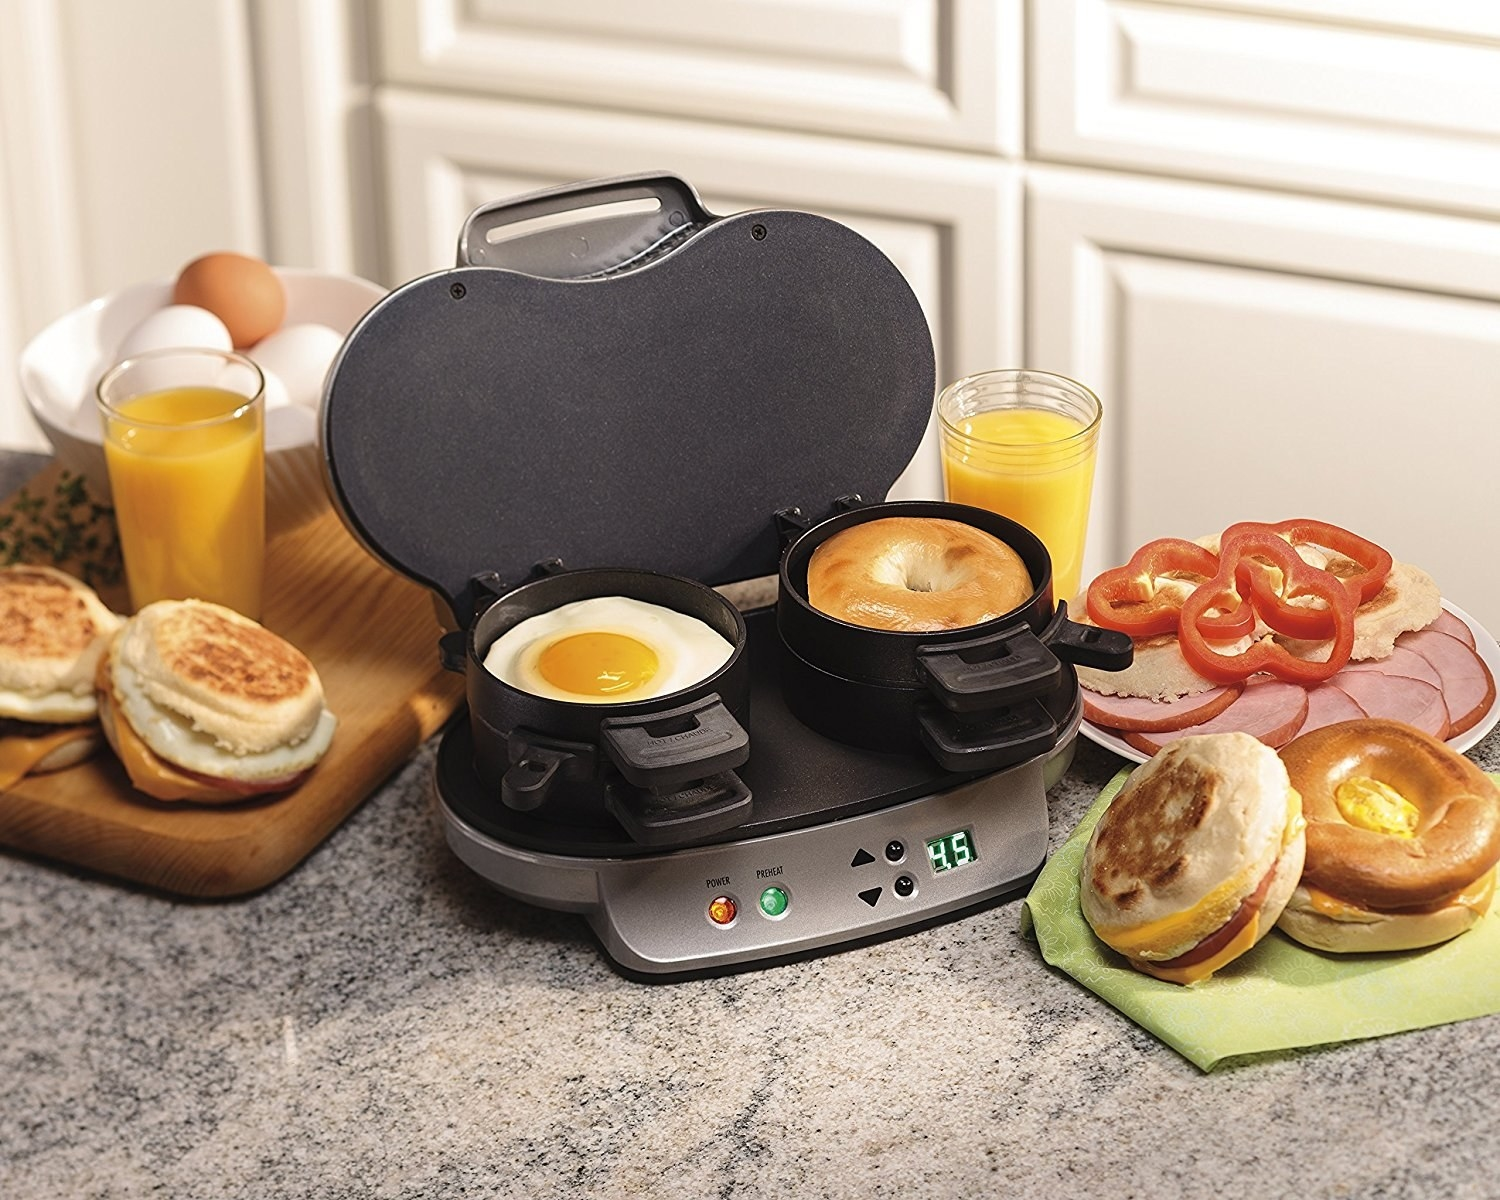 This Handy Gadget Can Cook Two Sandwiches In Five Minutes U2014 Thatu0026#x27;s